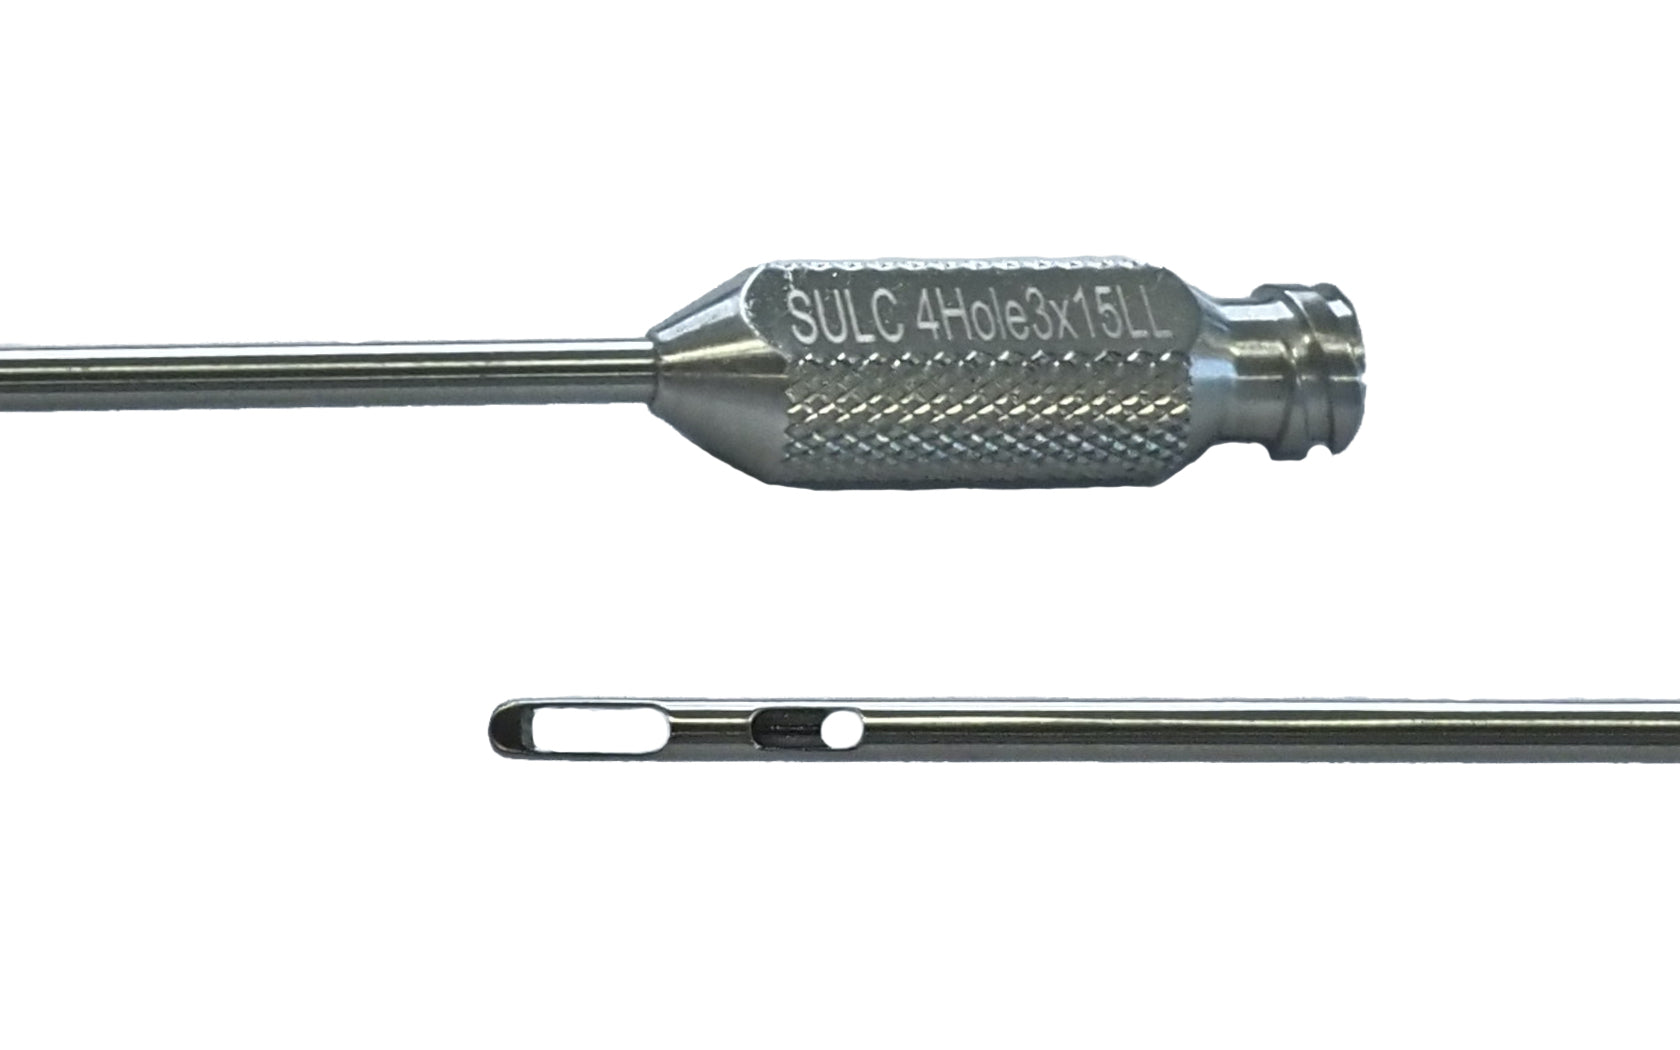 4 Hole Round Tip Single Use Fat Harvesting Cannula with Luer Lock by Precise Medical Supplies